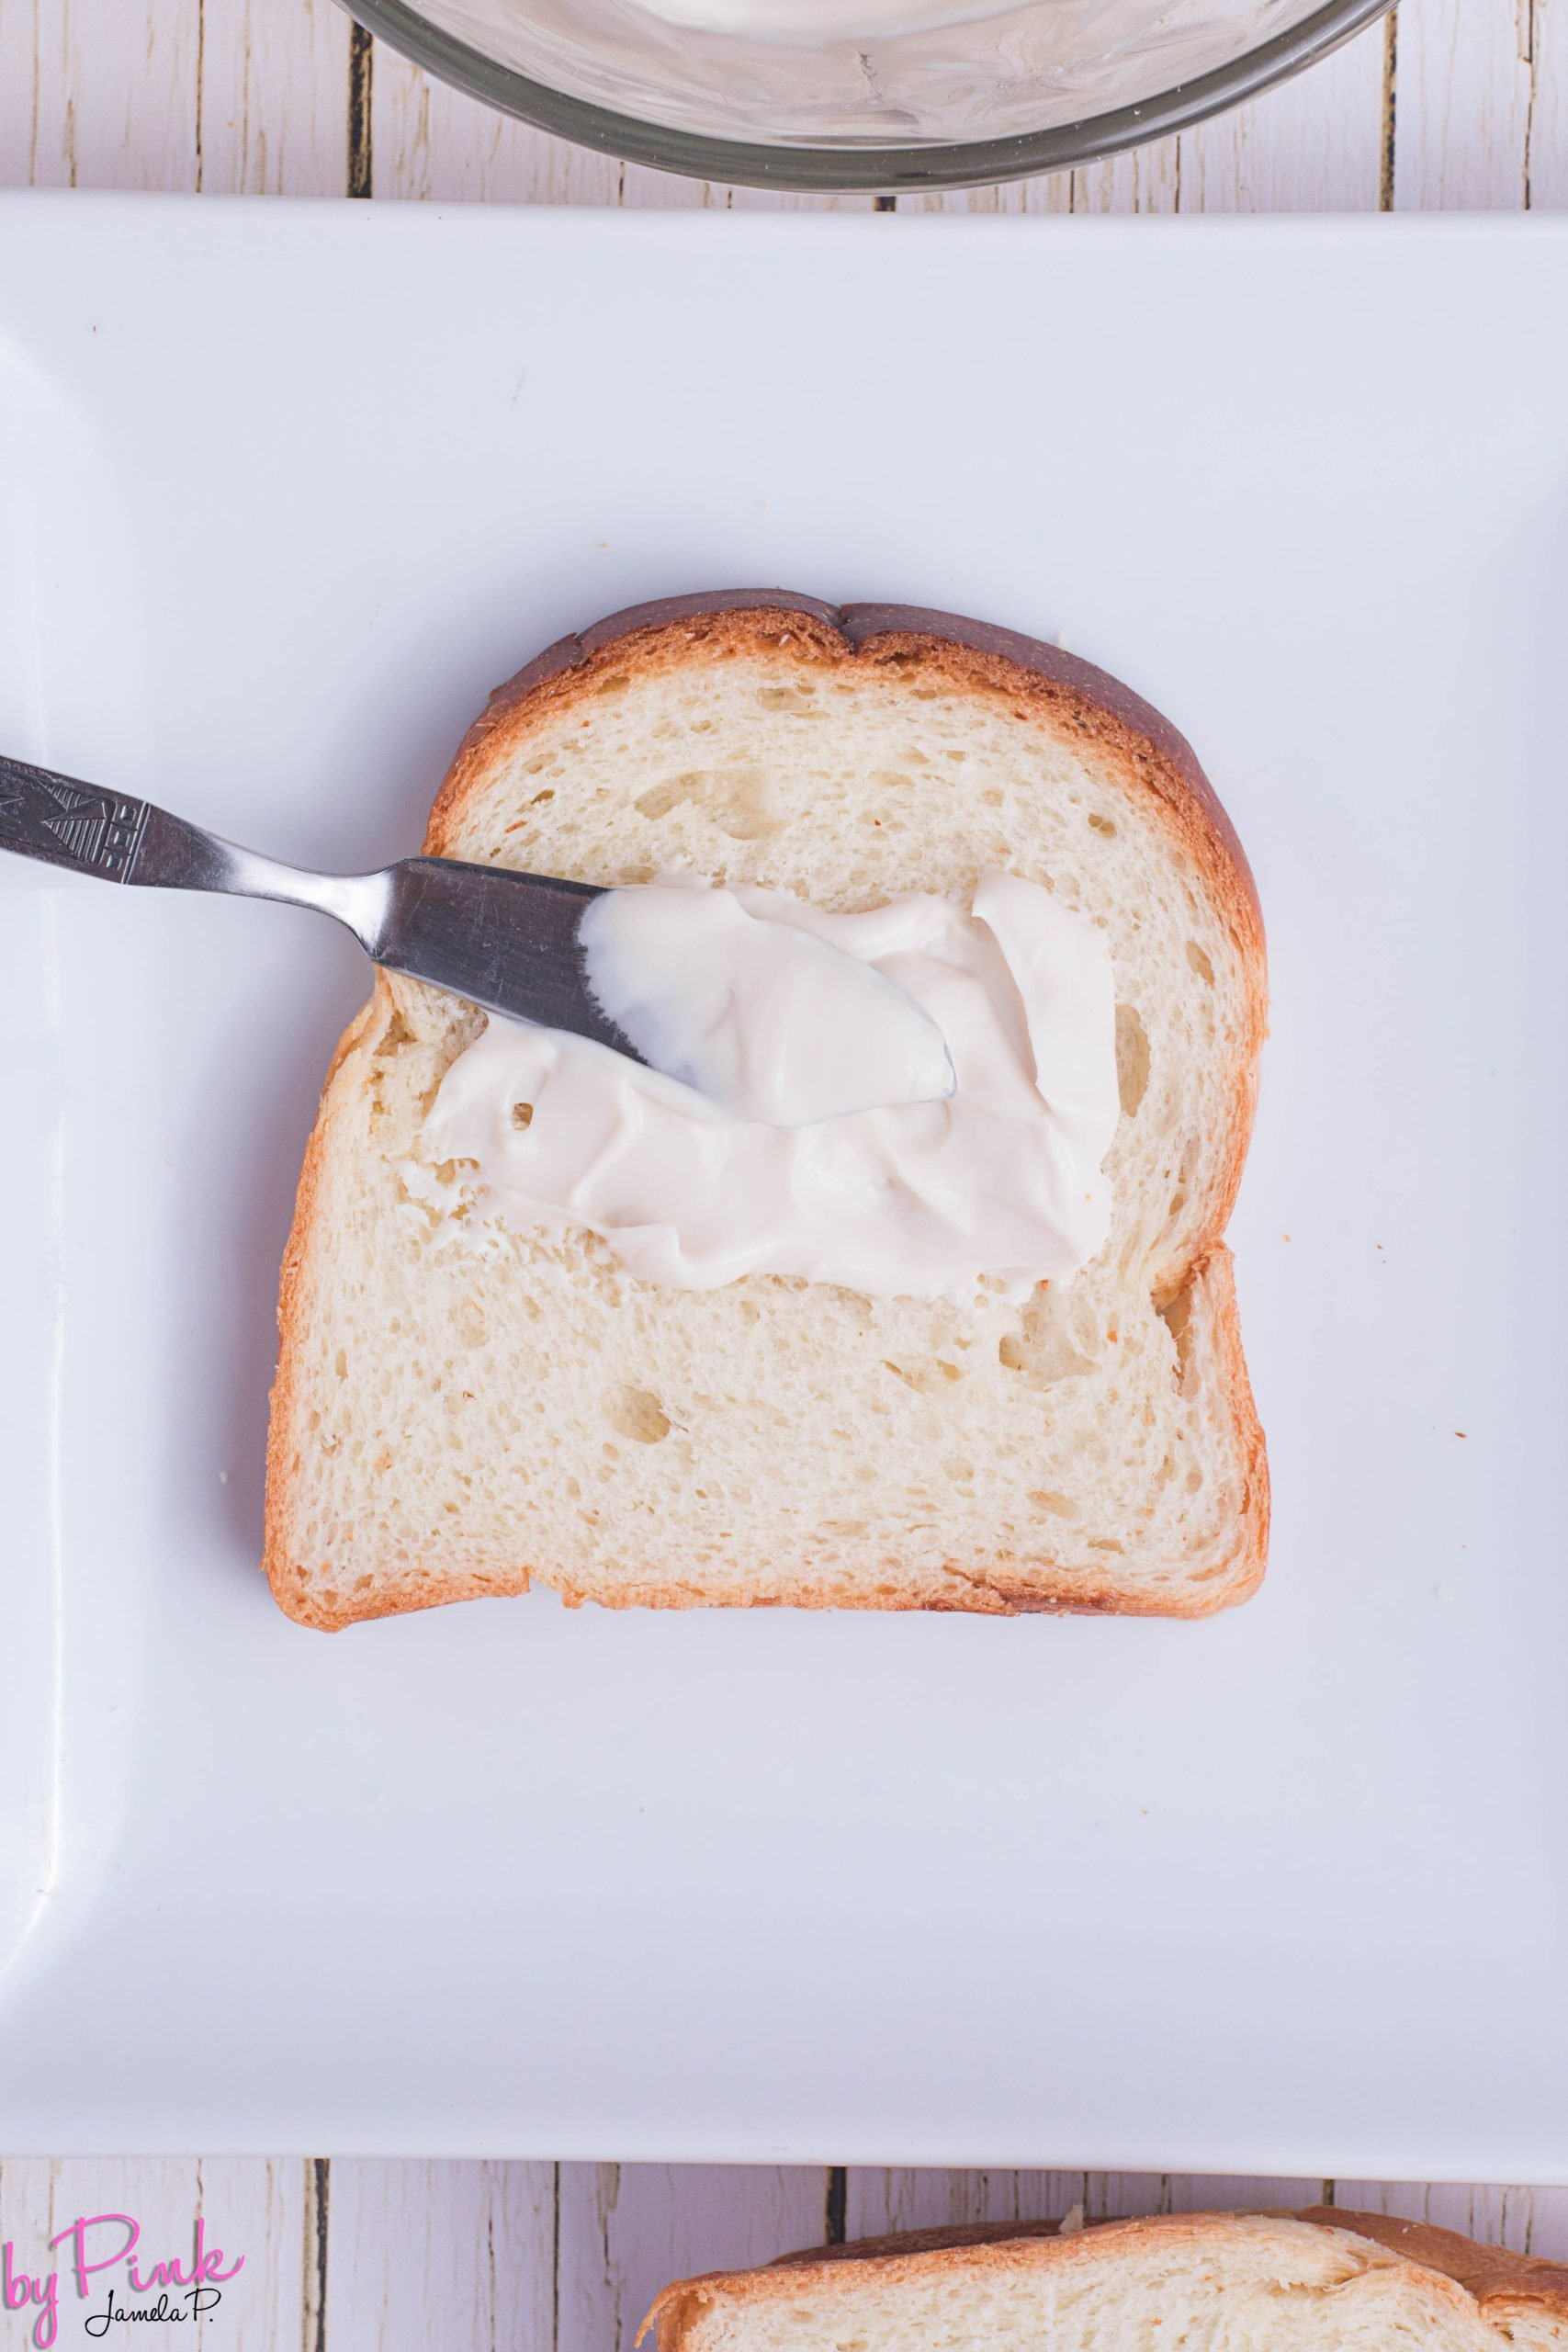 spreading cream cheese on thick bread